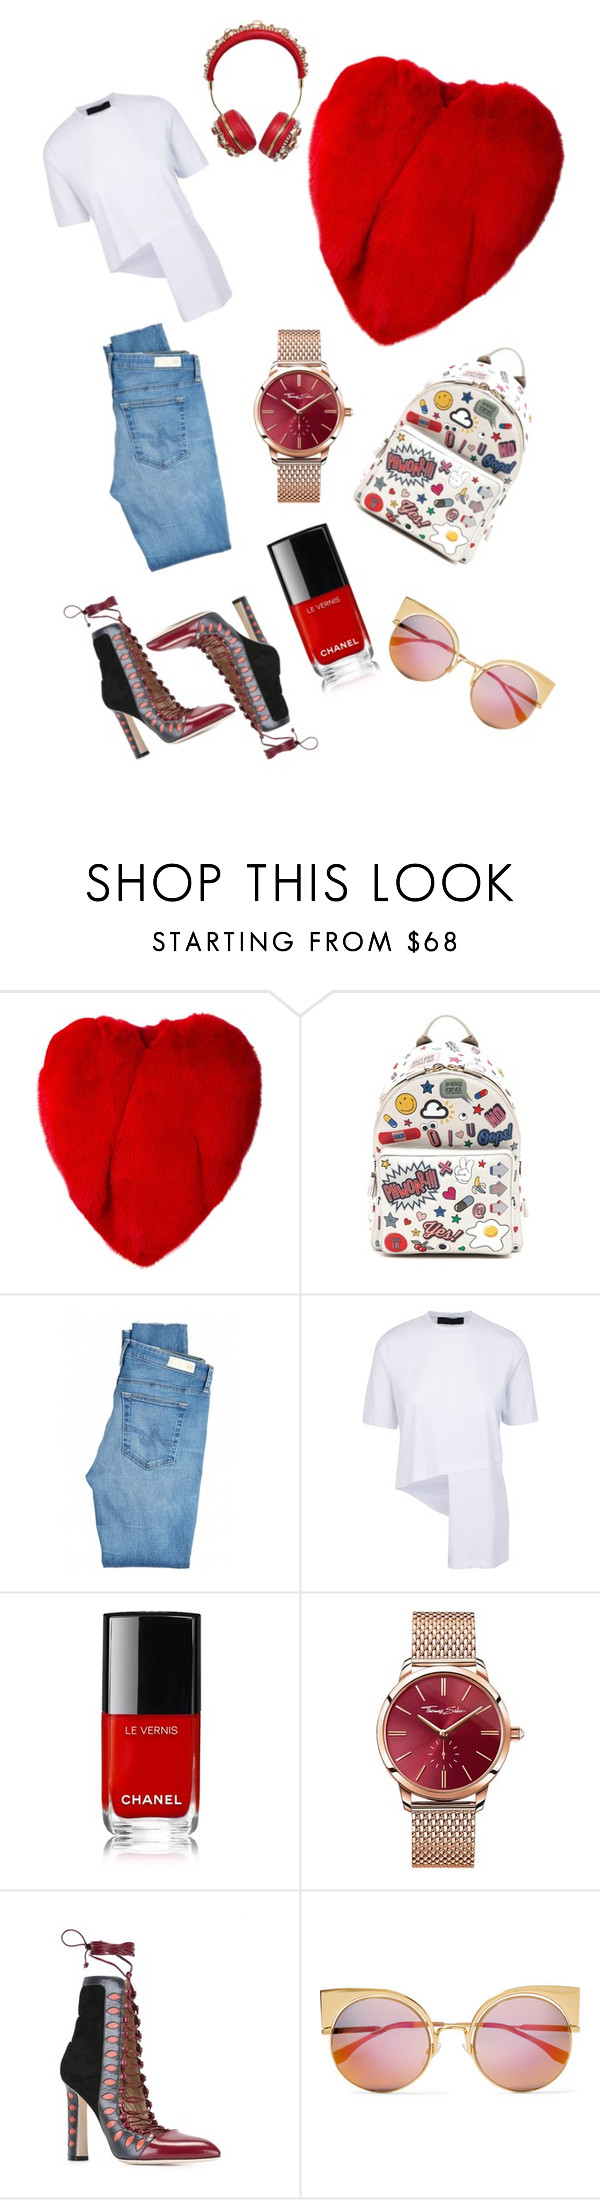 """Untitled #3520"" by fashionhypedaily ❤ liked on Polyvore featuring Yves Saint Laurent, Anya Hindmarch, AG Adriano Goldschmied, Thomas Sabo, Paula Cademartori, Fendi and Dolce&Gabbana"